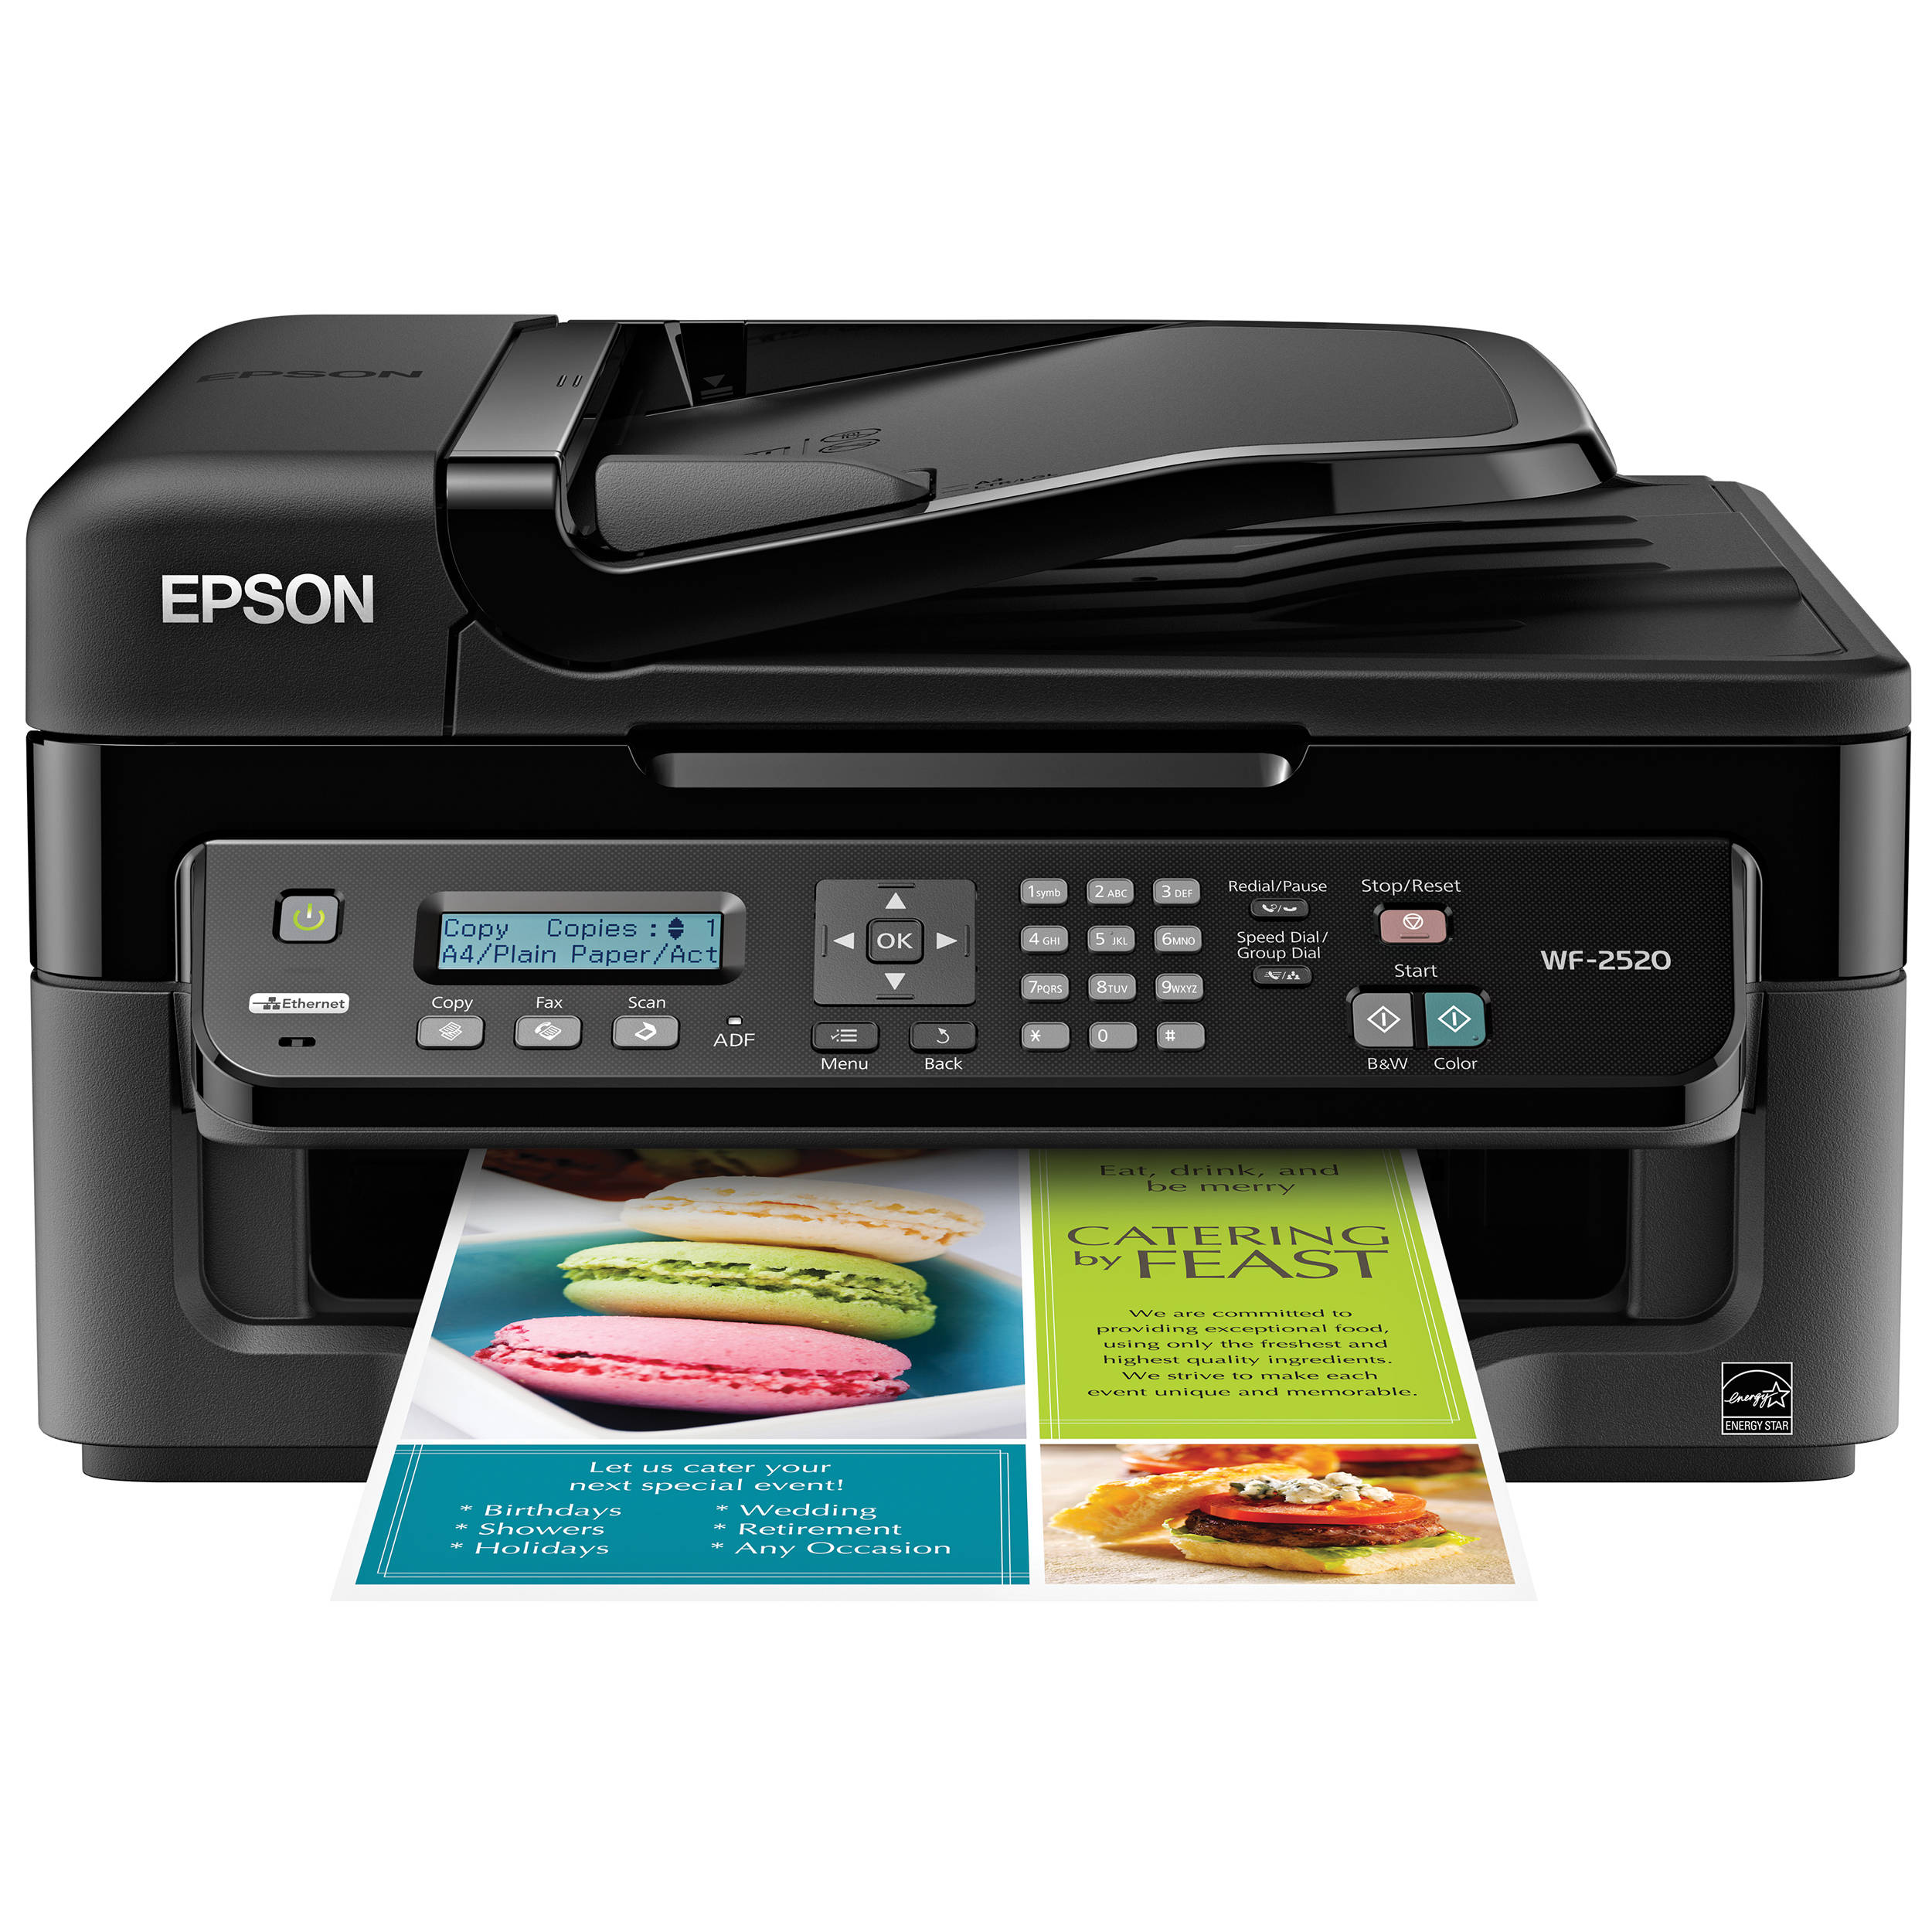 epson workforce wf 2520 network color all in one